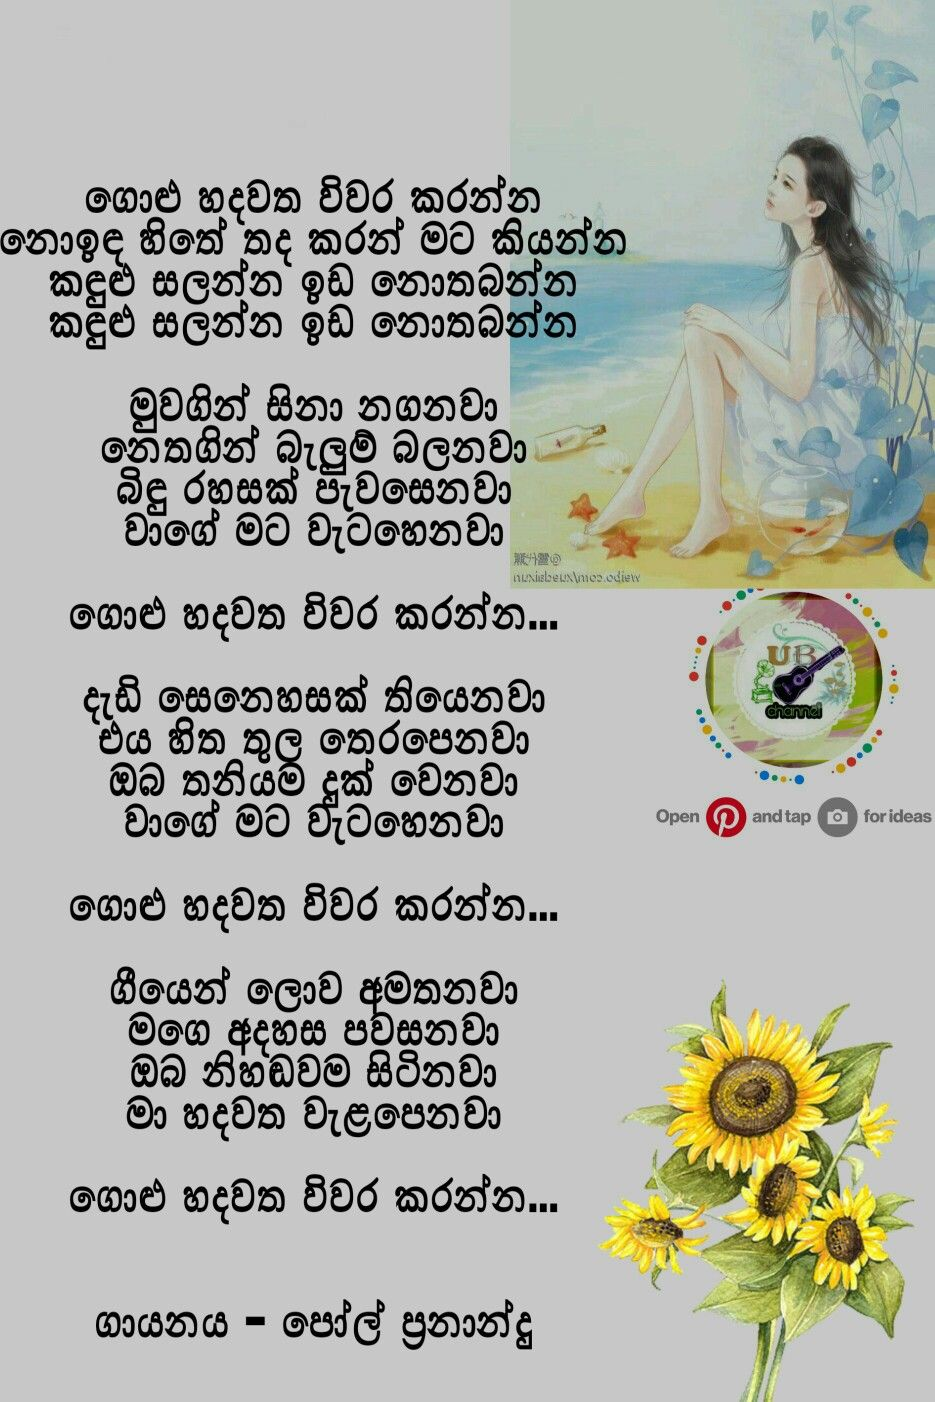 Artist Paul Fernando Lyrics Ecard Meme Wedding